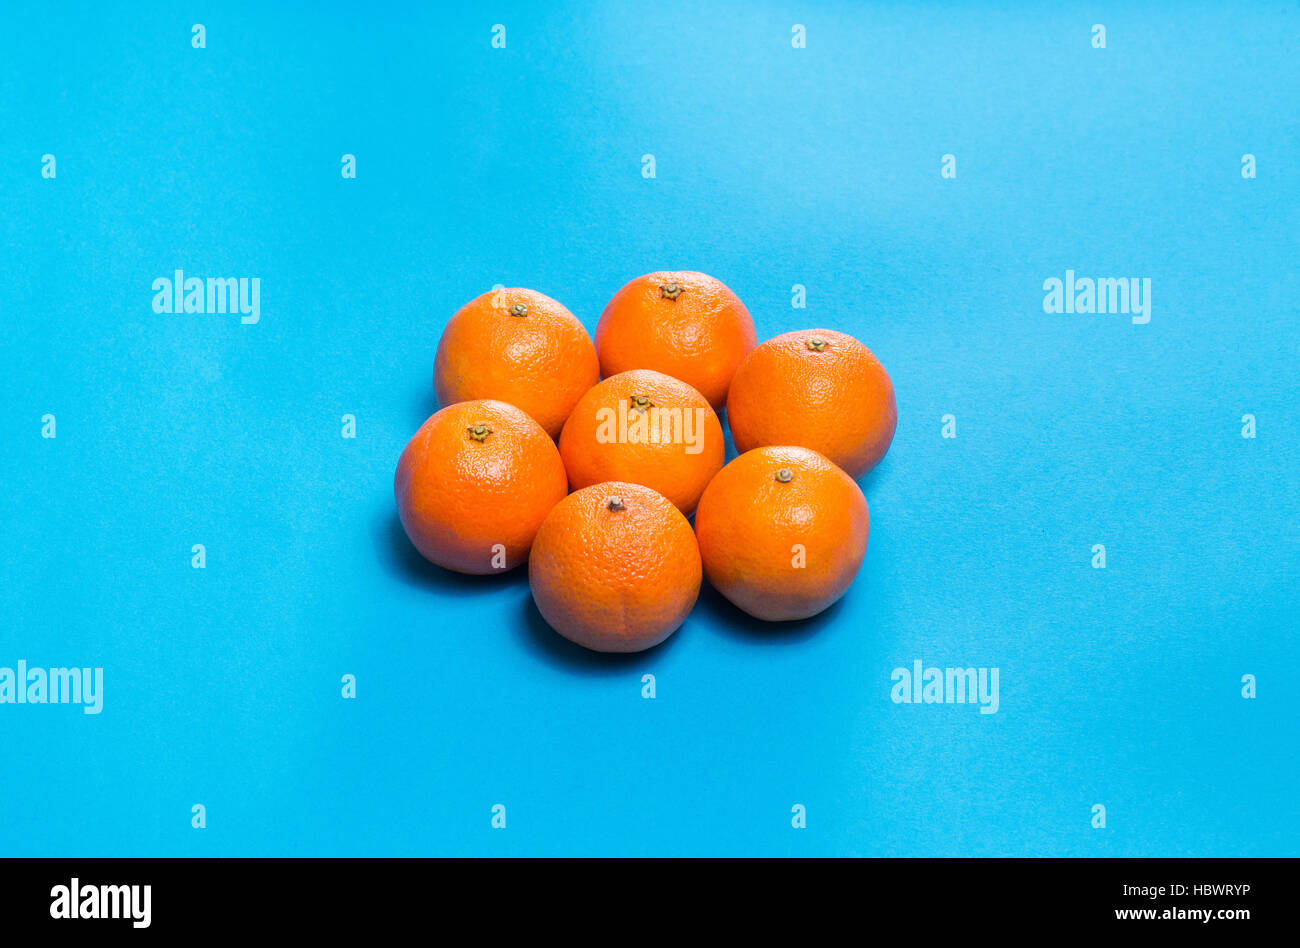 Sun symbol from Six Colorful fresh orange mandarins laid out on blue table viewed  above with copy space - Stock Image